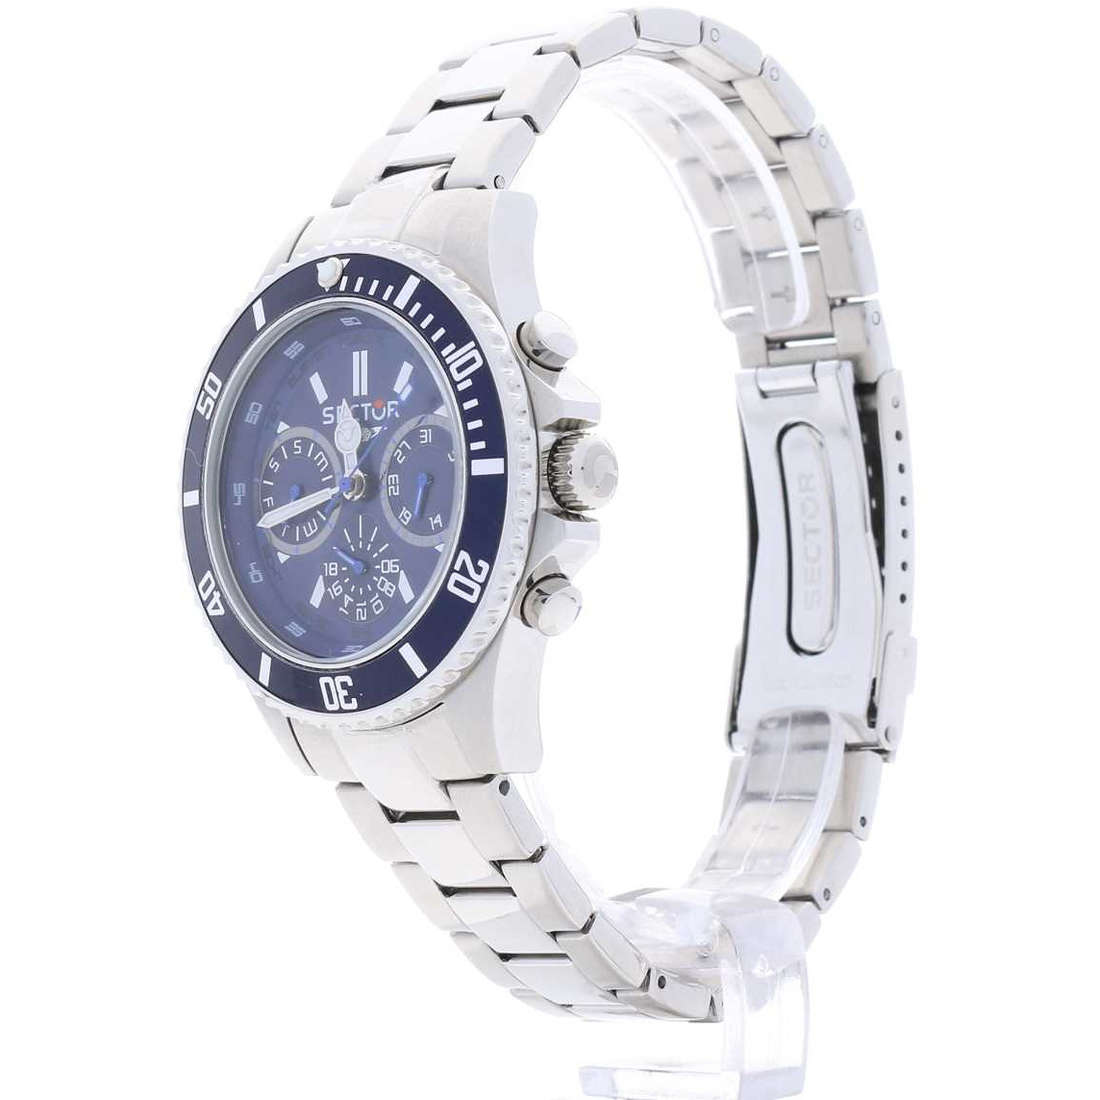 sale watches man Sector R3253161009